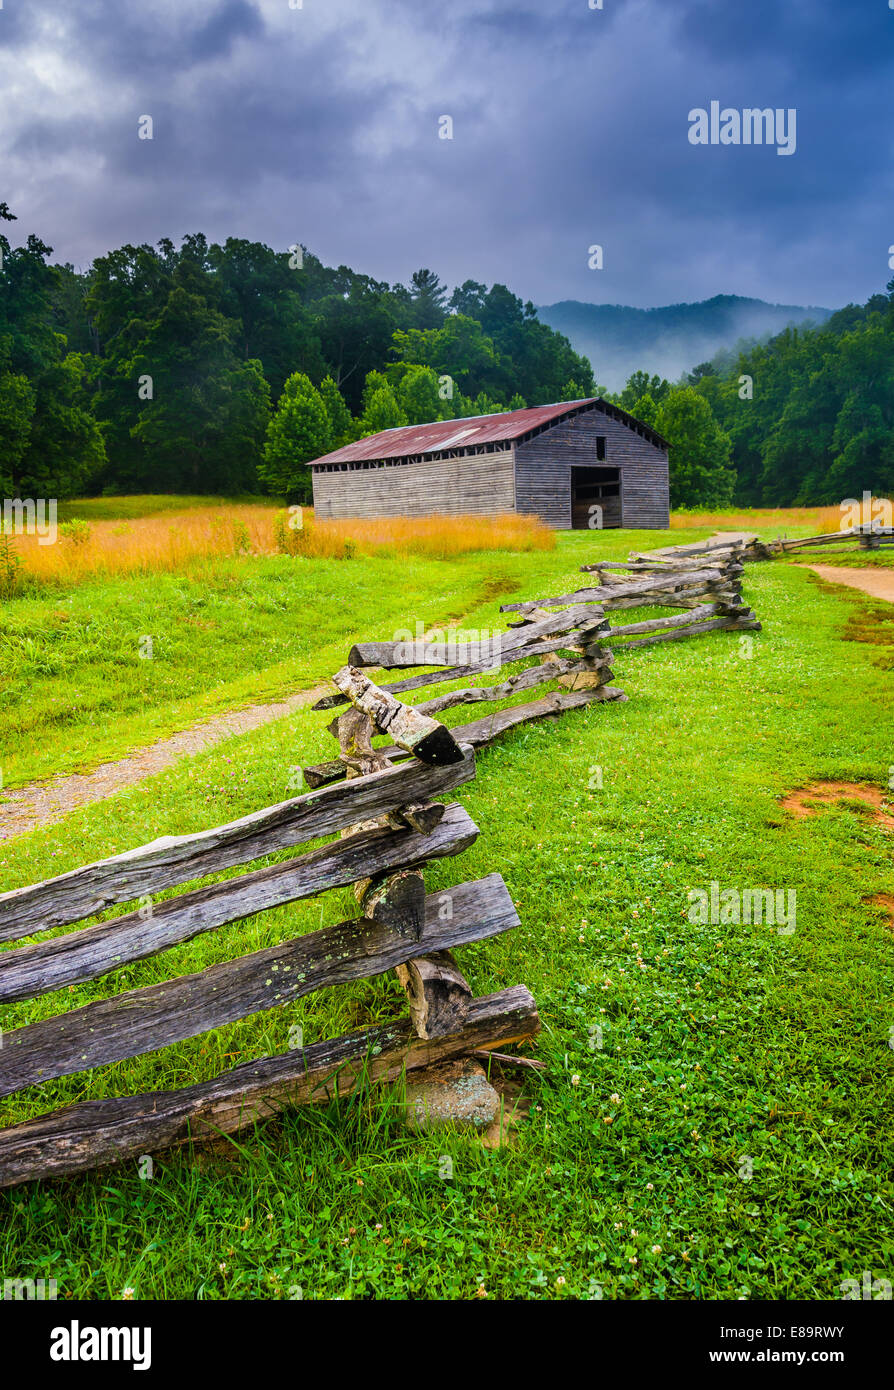 Fence and barn on a foggy morning, at Cade's Cove, Great Smoky Mountains National Park, Tennessee. - Stock Image